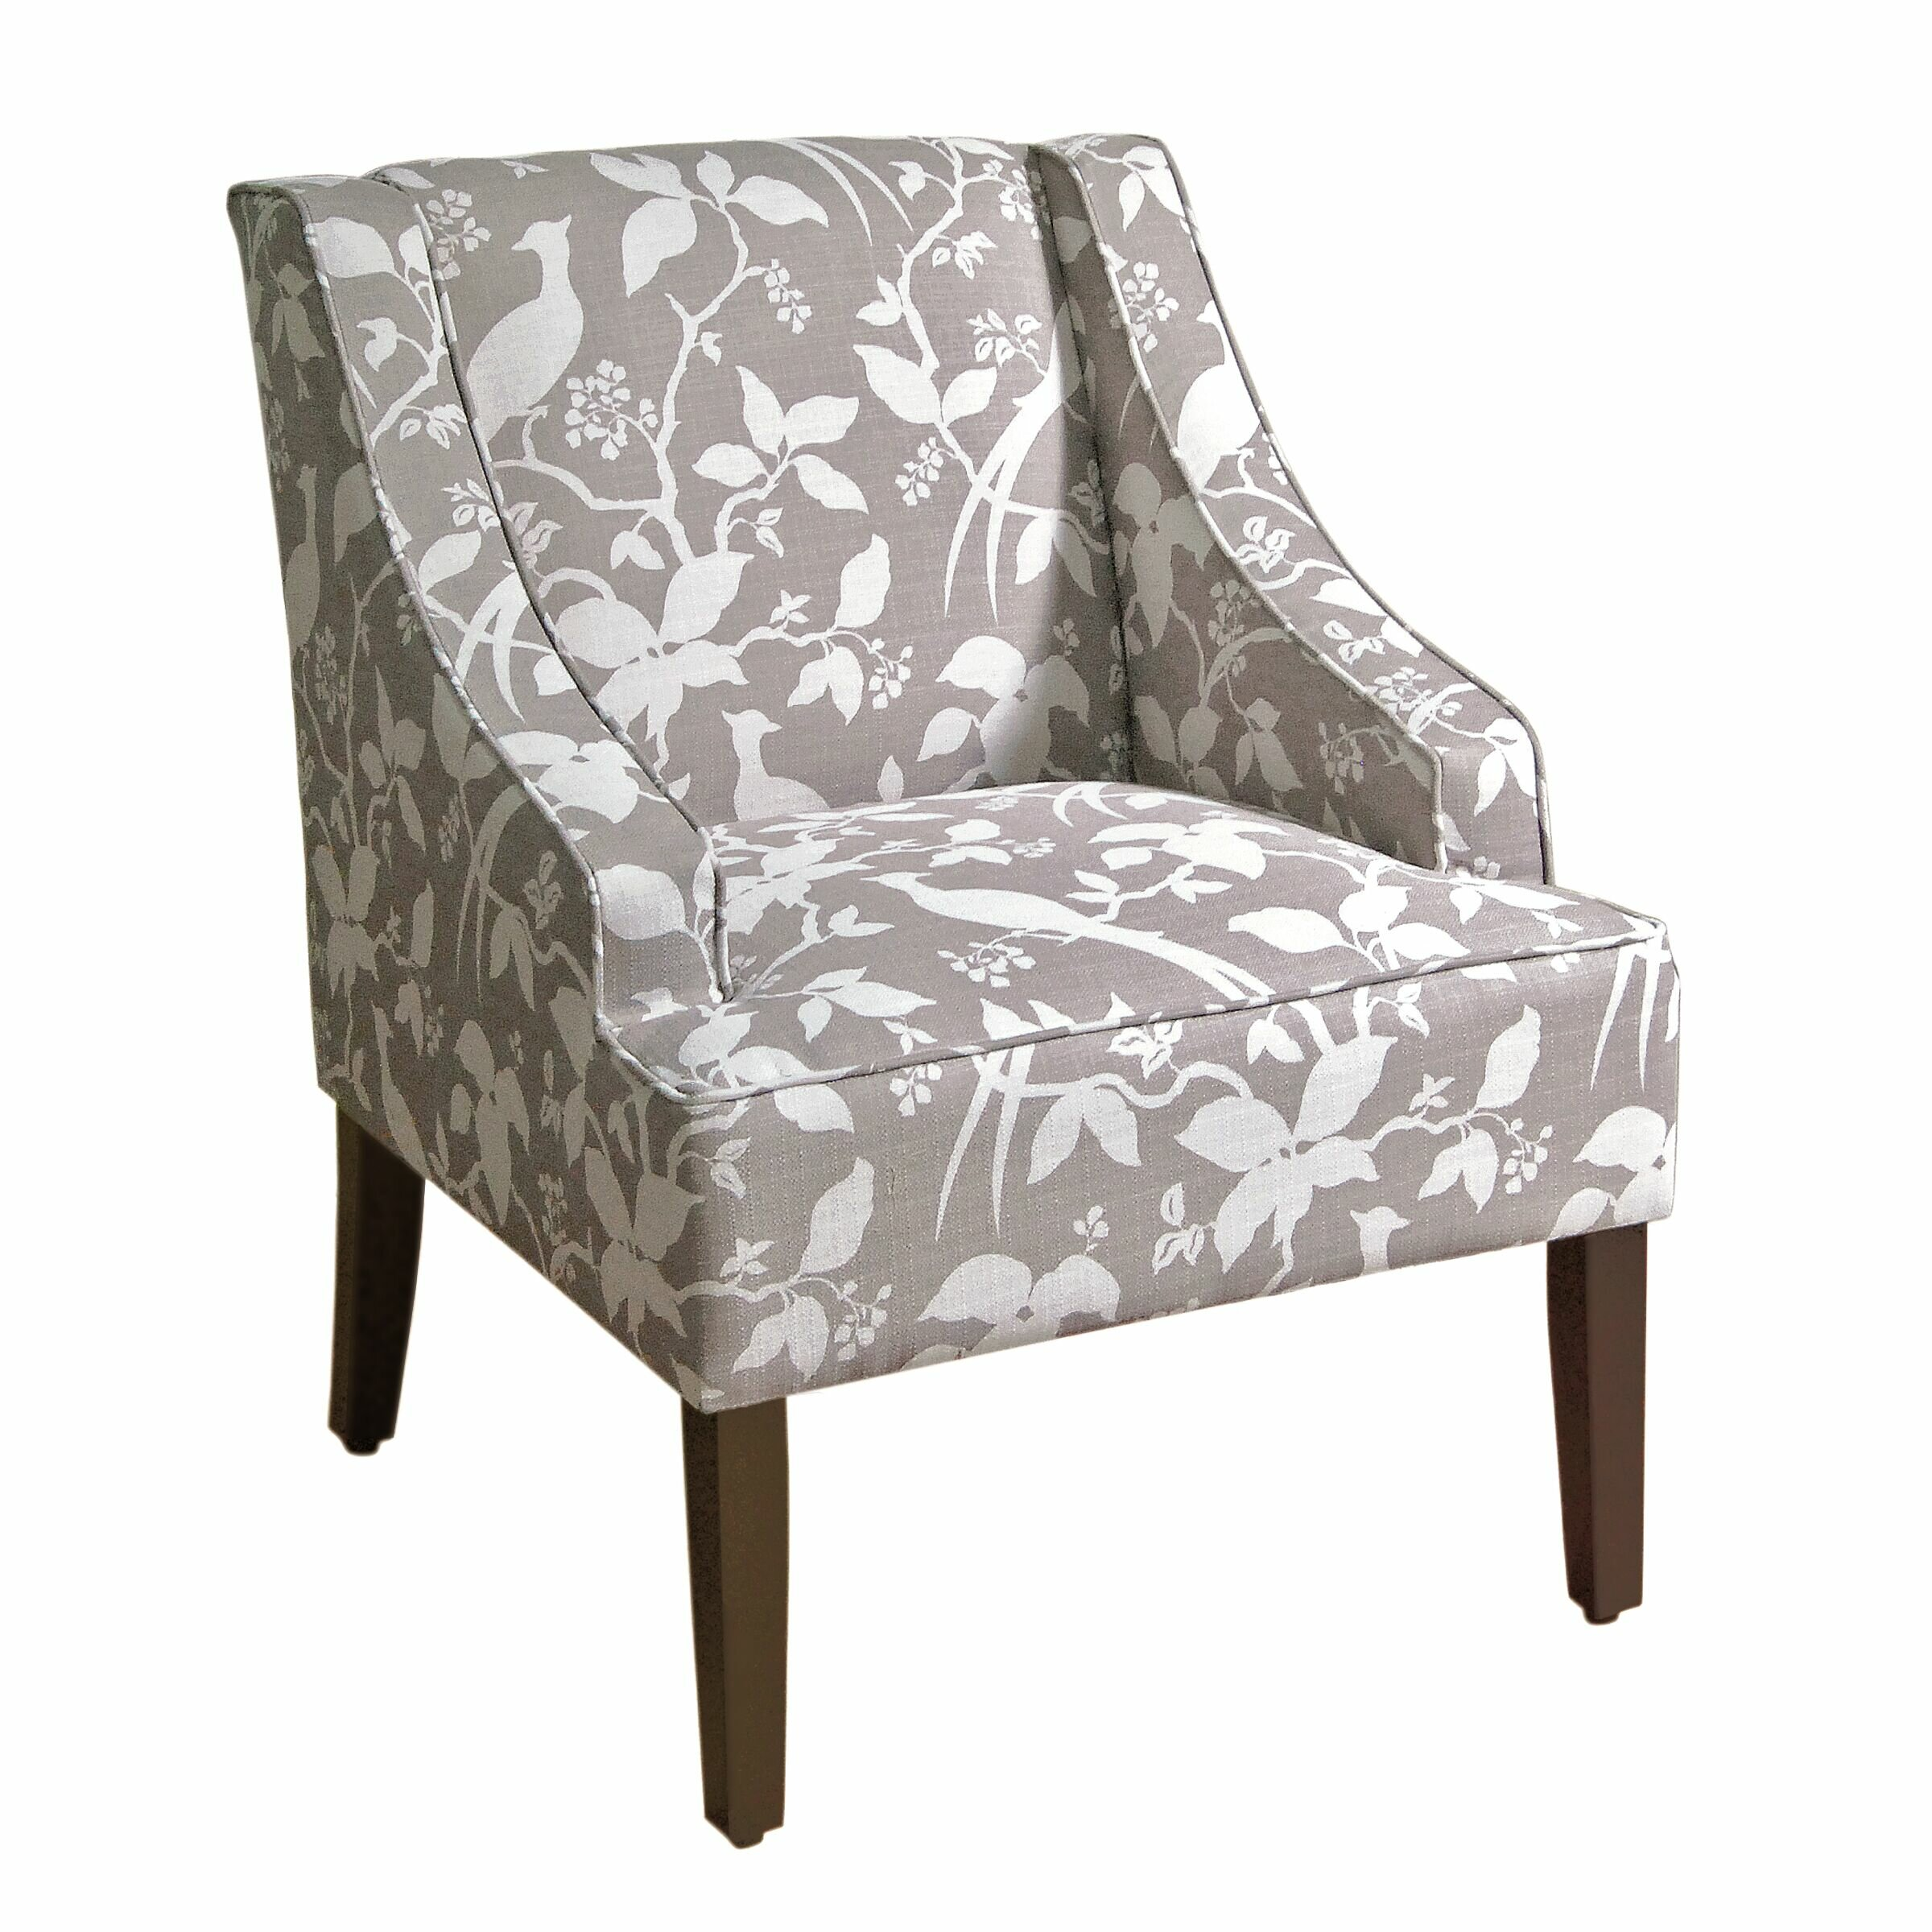 Laurel foundry modern farmhouse annette accent arm chair for Modern farmhouse dining chairs